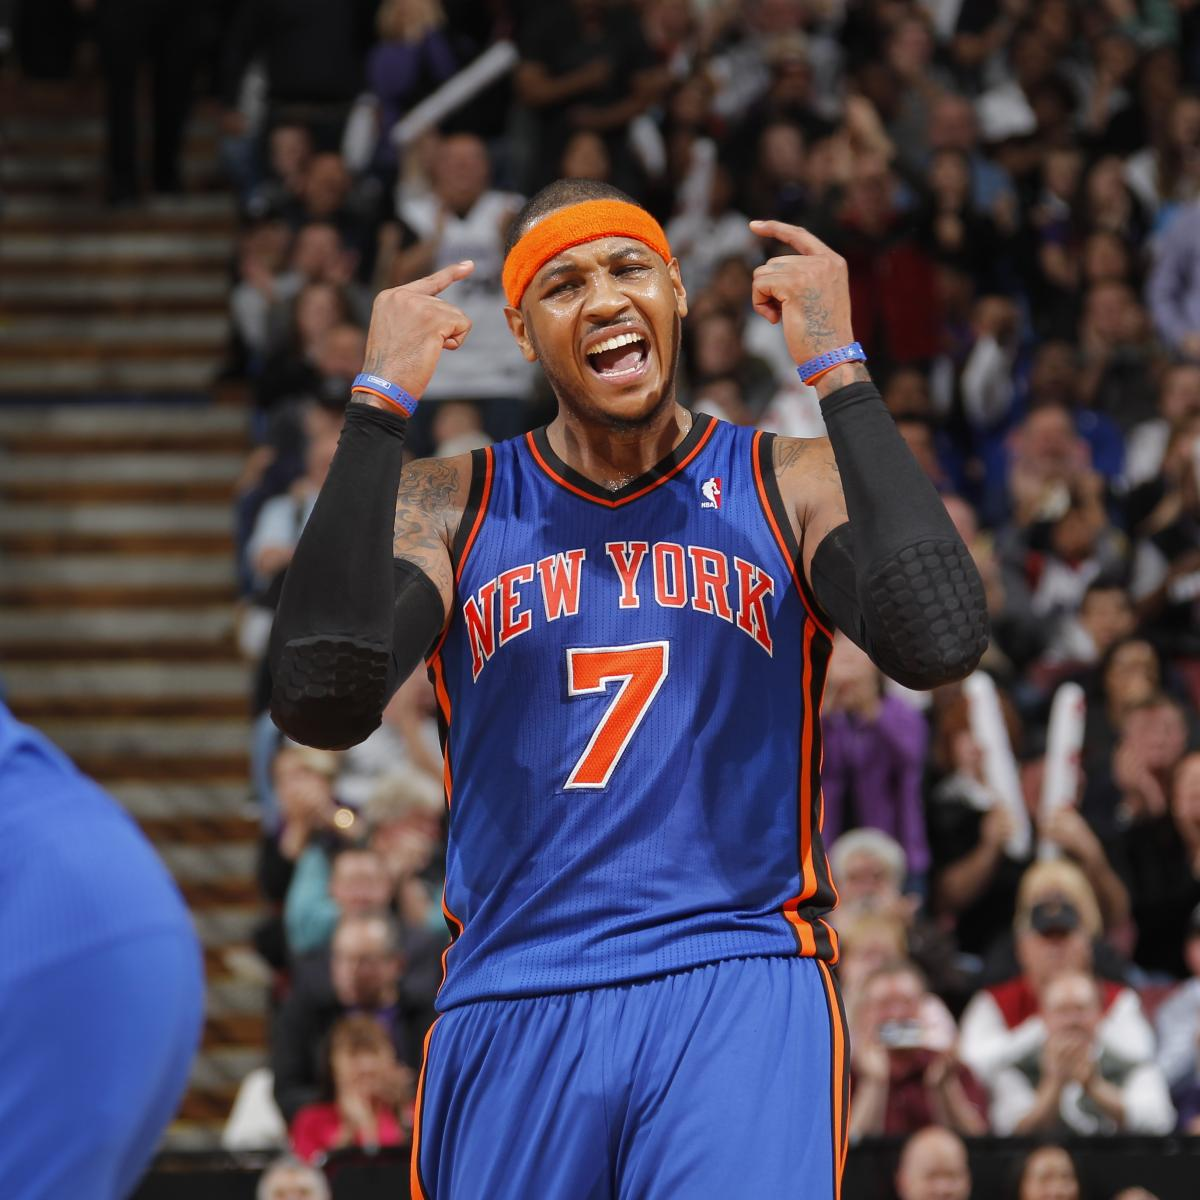 Nuggets Clippers Highlights: Eight Years Ago, The Nuggets Traded Carmelo Anthony To The